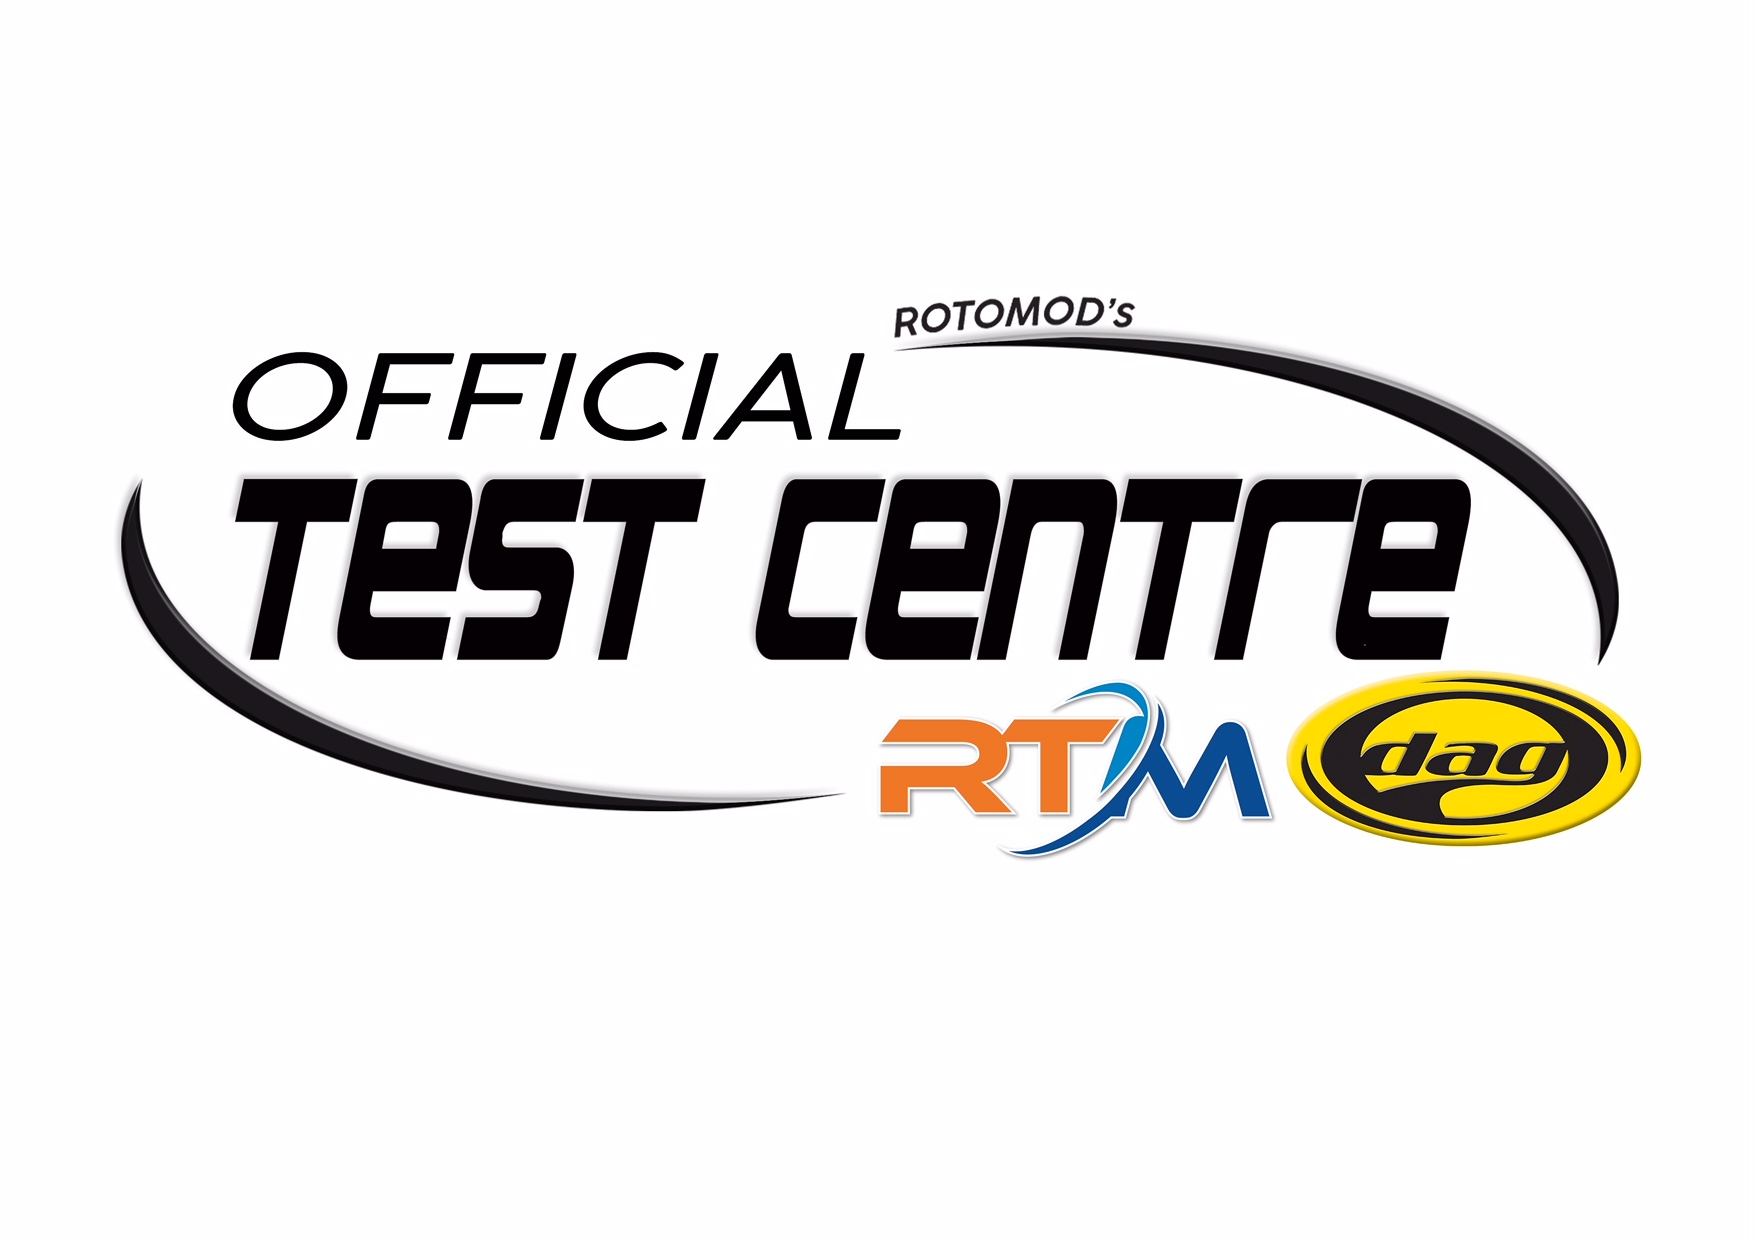 official-test-centre.jpg